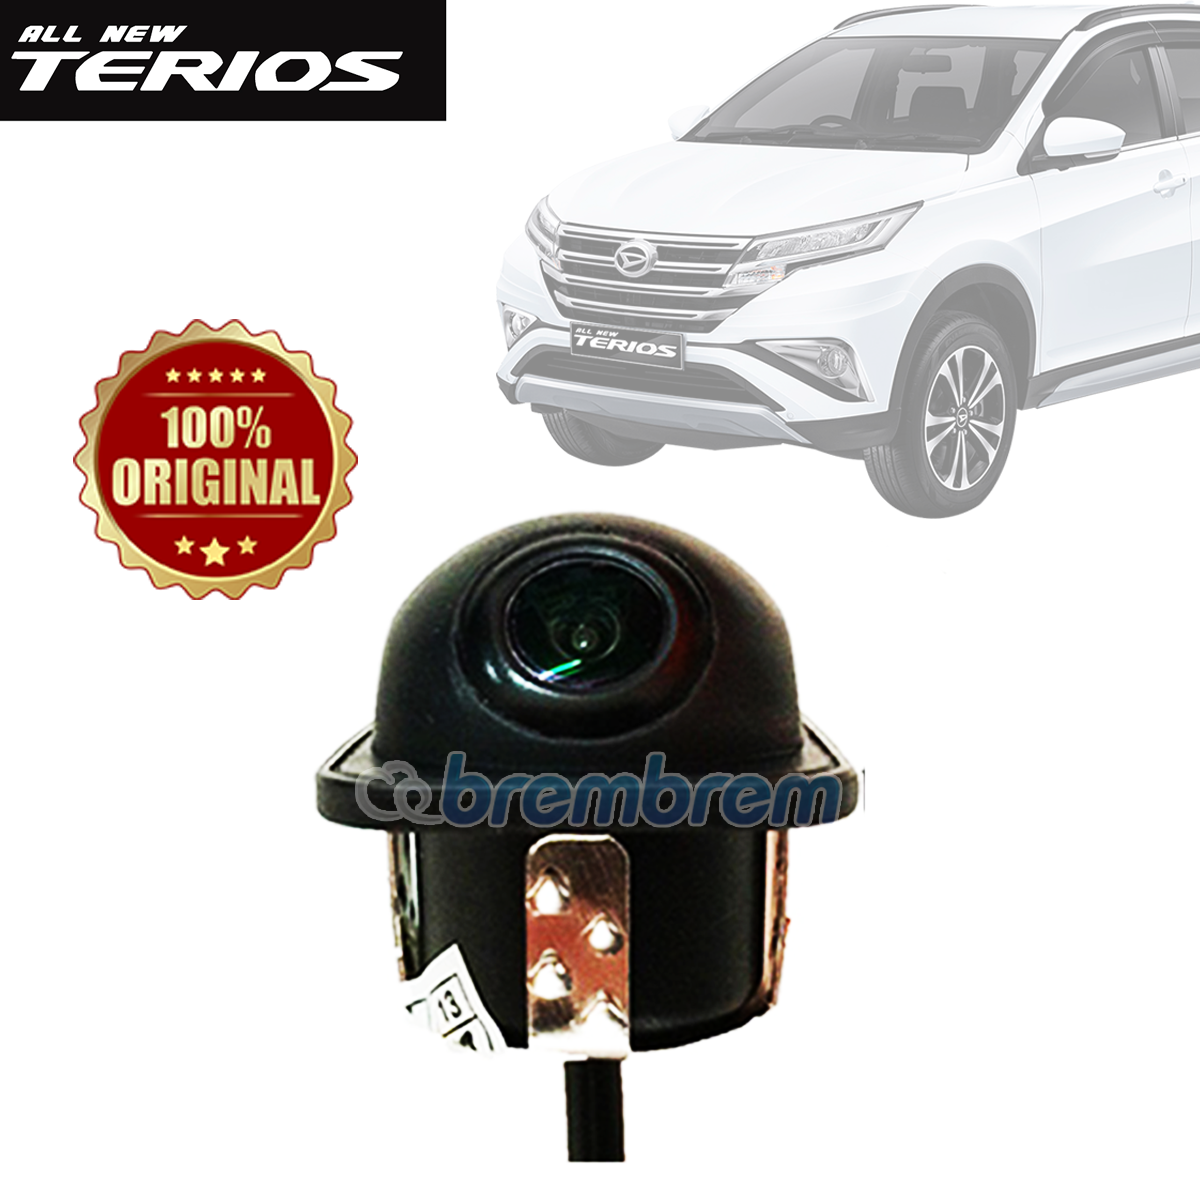 DIGICAM - KAMERA MUNDUR DAIHATSU ALL NEW TERIOS